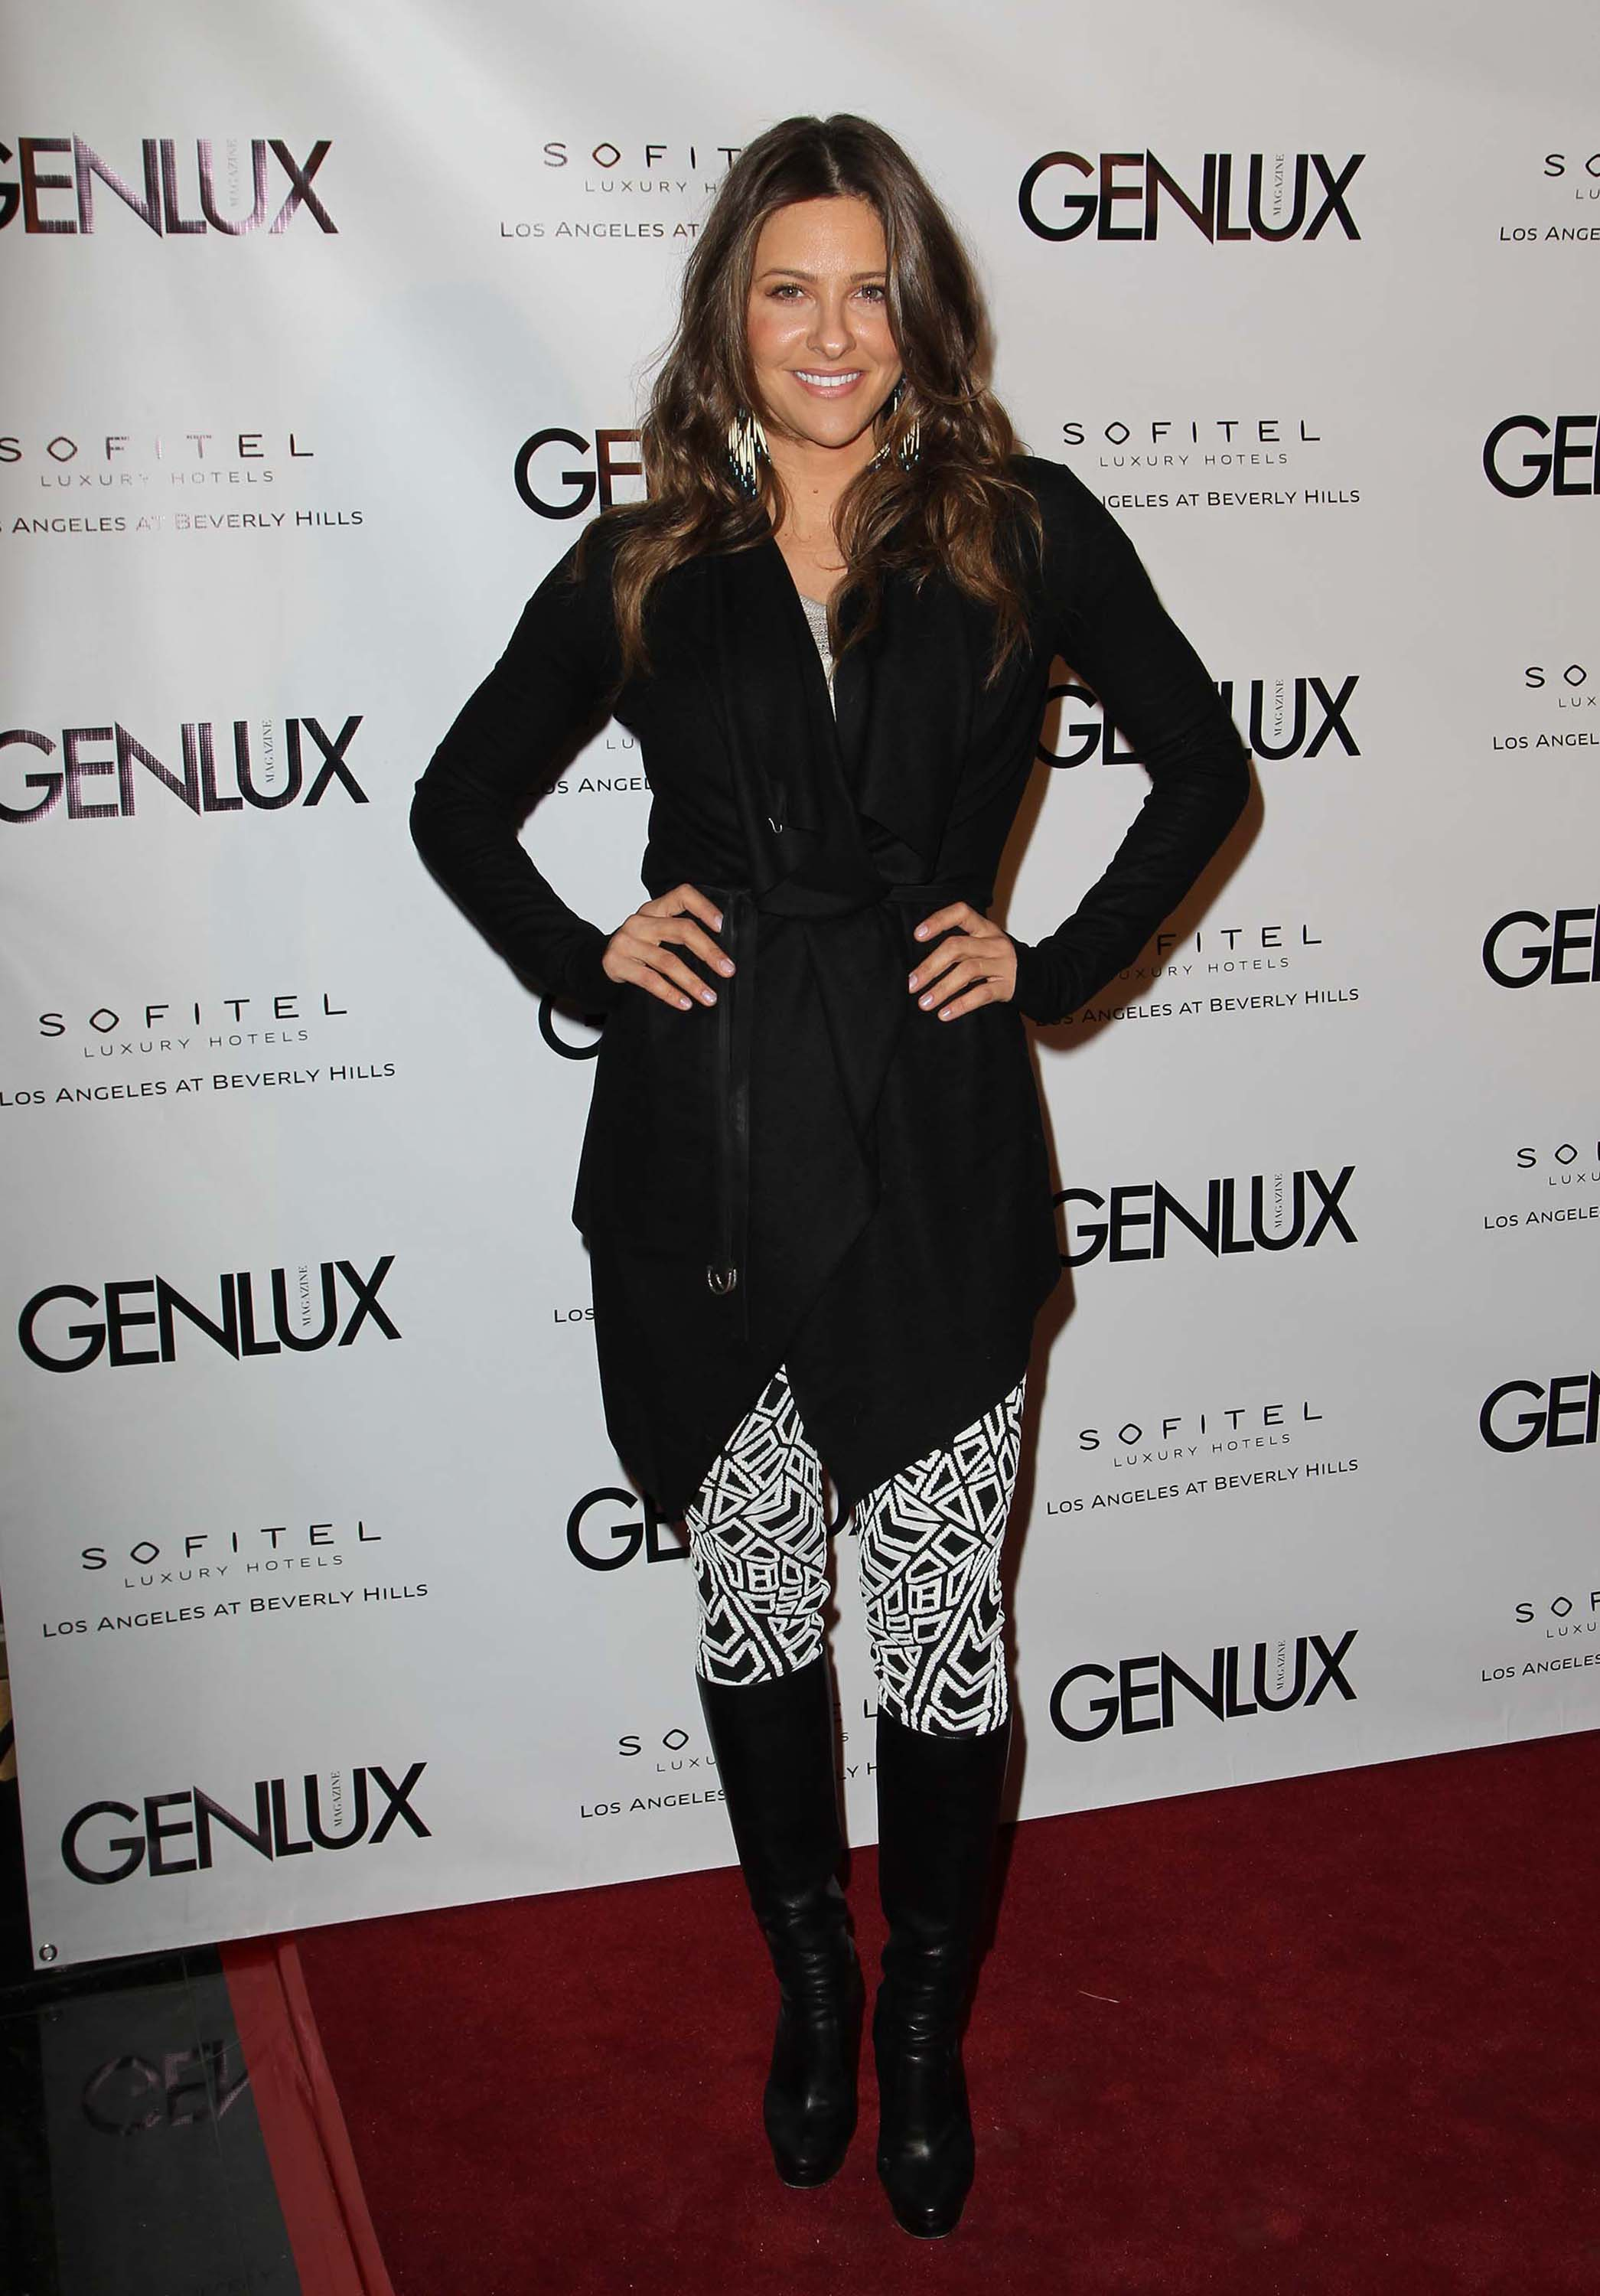 Jill Wagner New Bar Riviera 31 opening in Beverly Hills 1/15/13